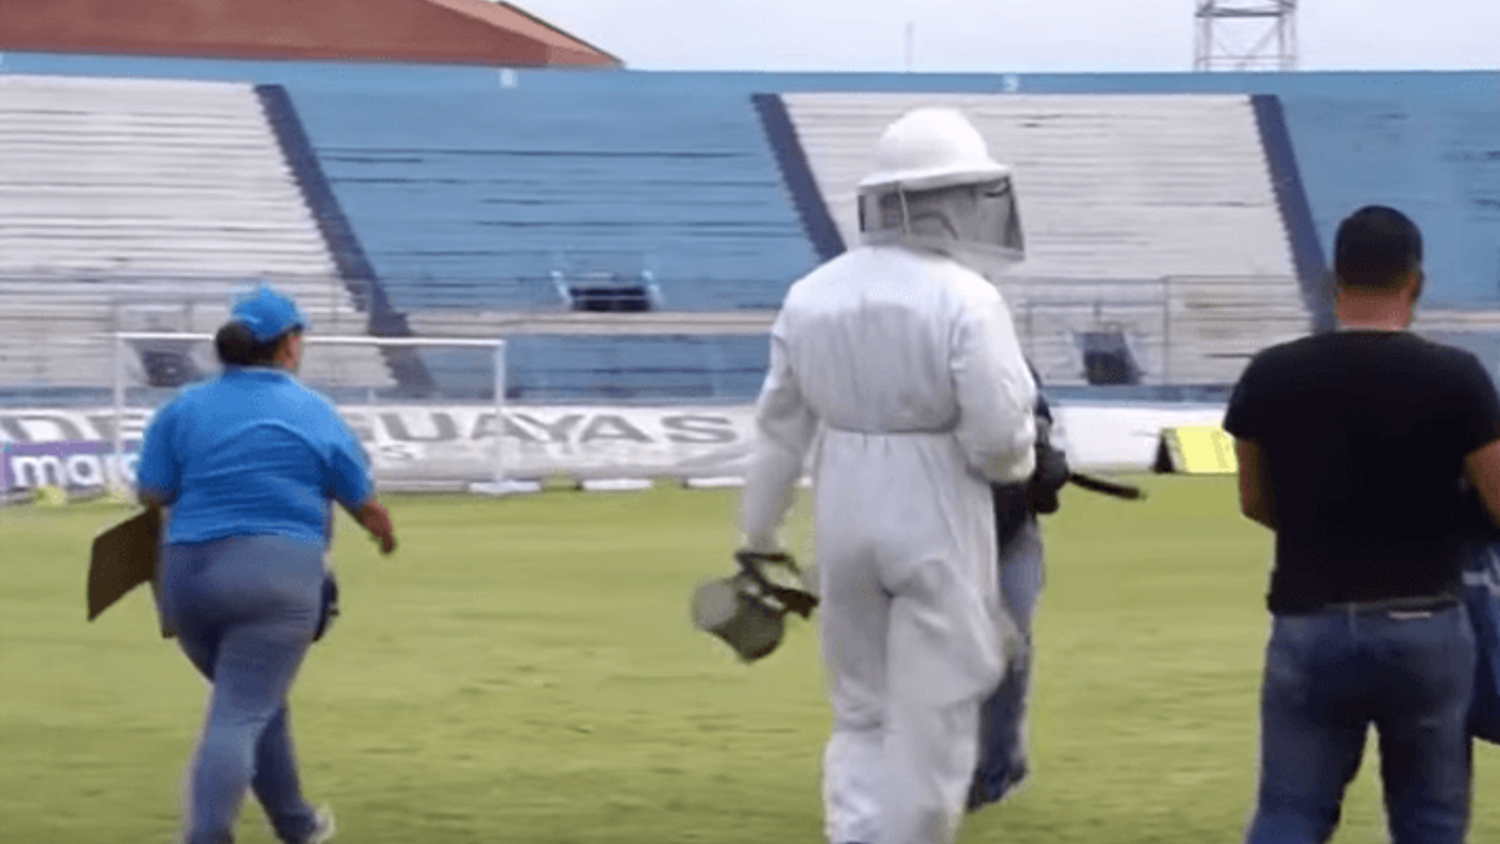 Match abandoned due to a swarm of bees